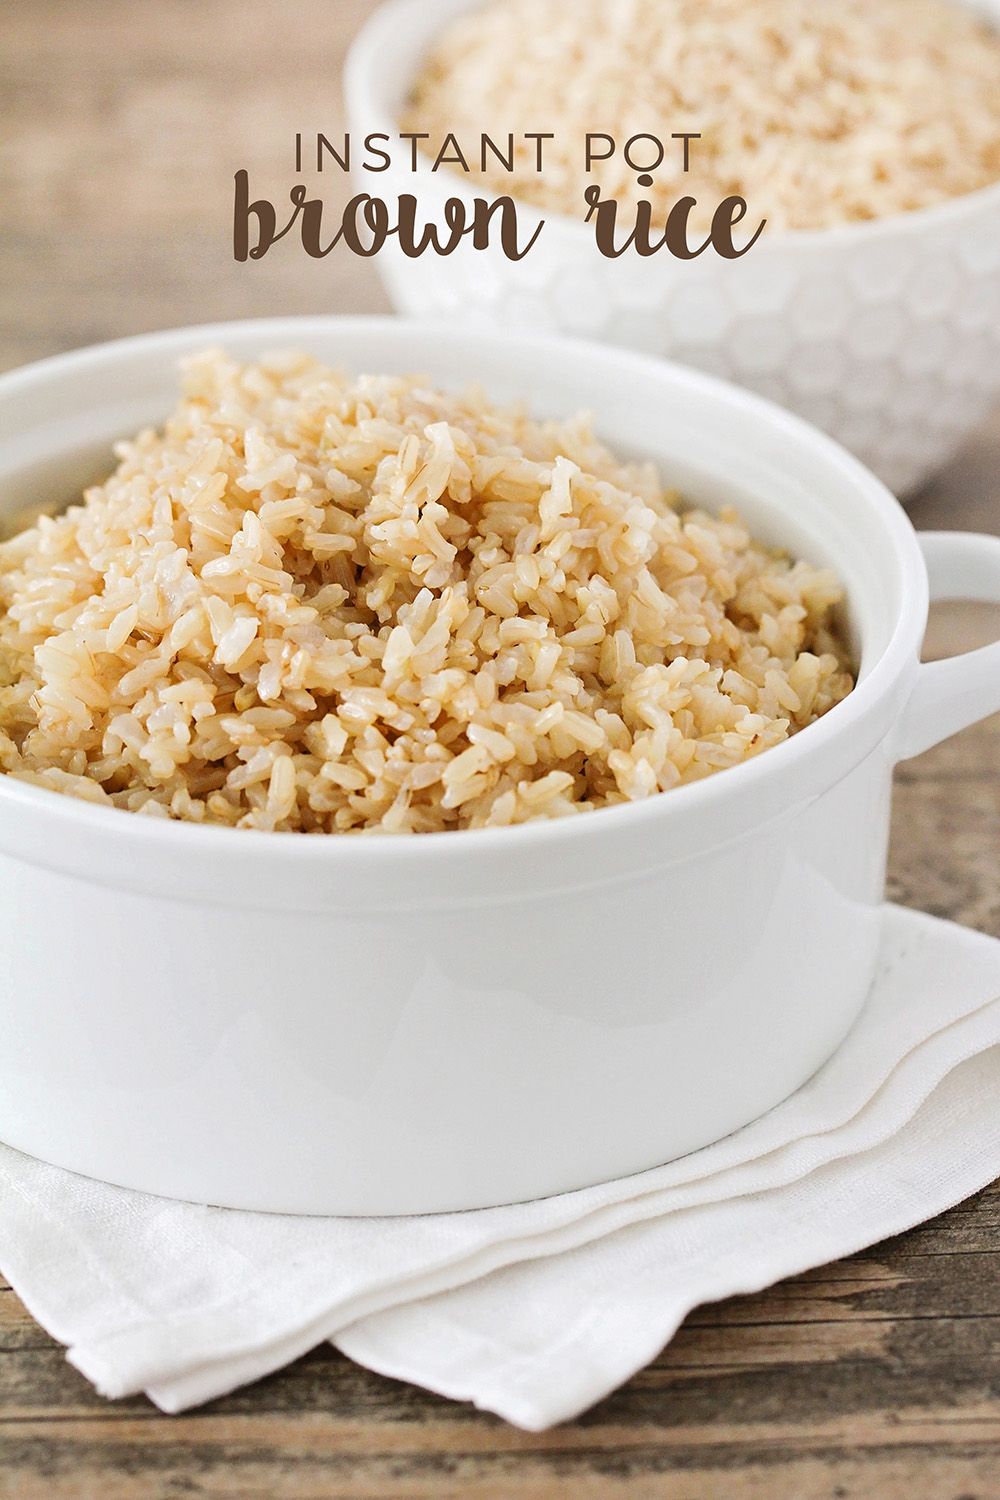 This instant pot brown rice cooks in just 22 minutes and is so light and fluffy!